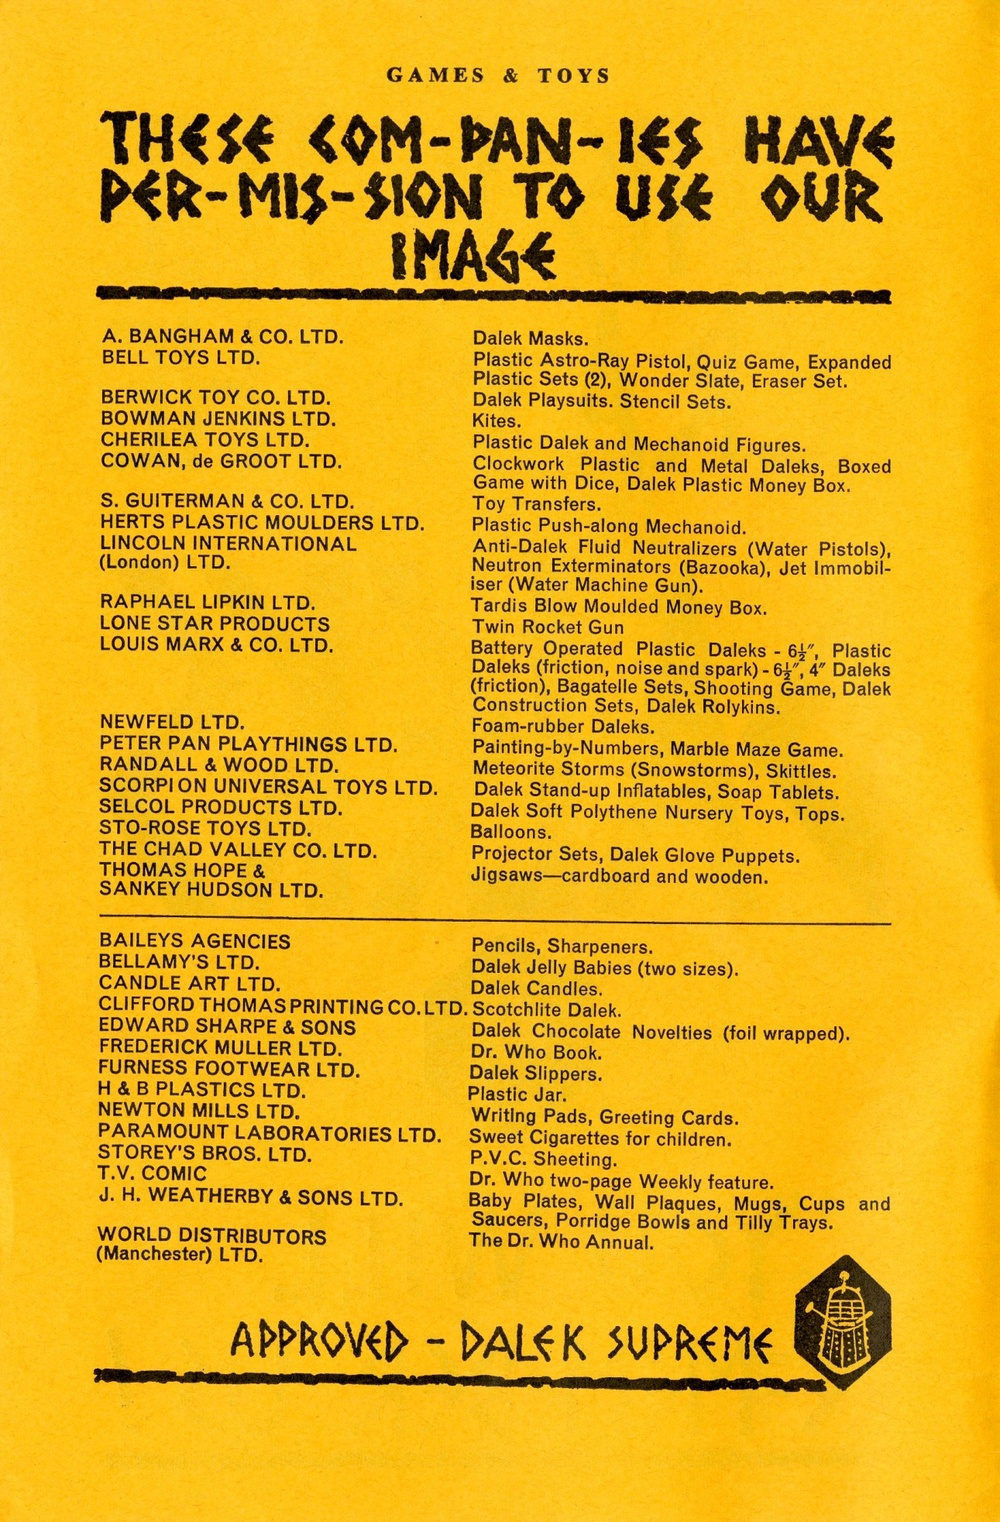 Supplement to Games and Toys, September 1965, list of merchandise licensees